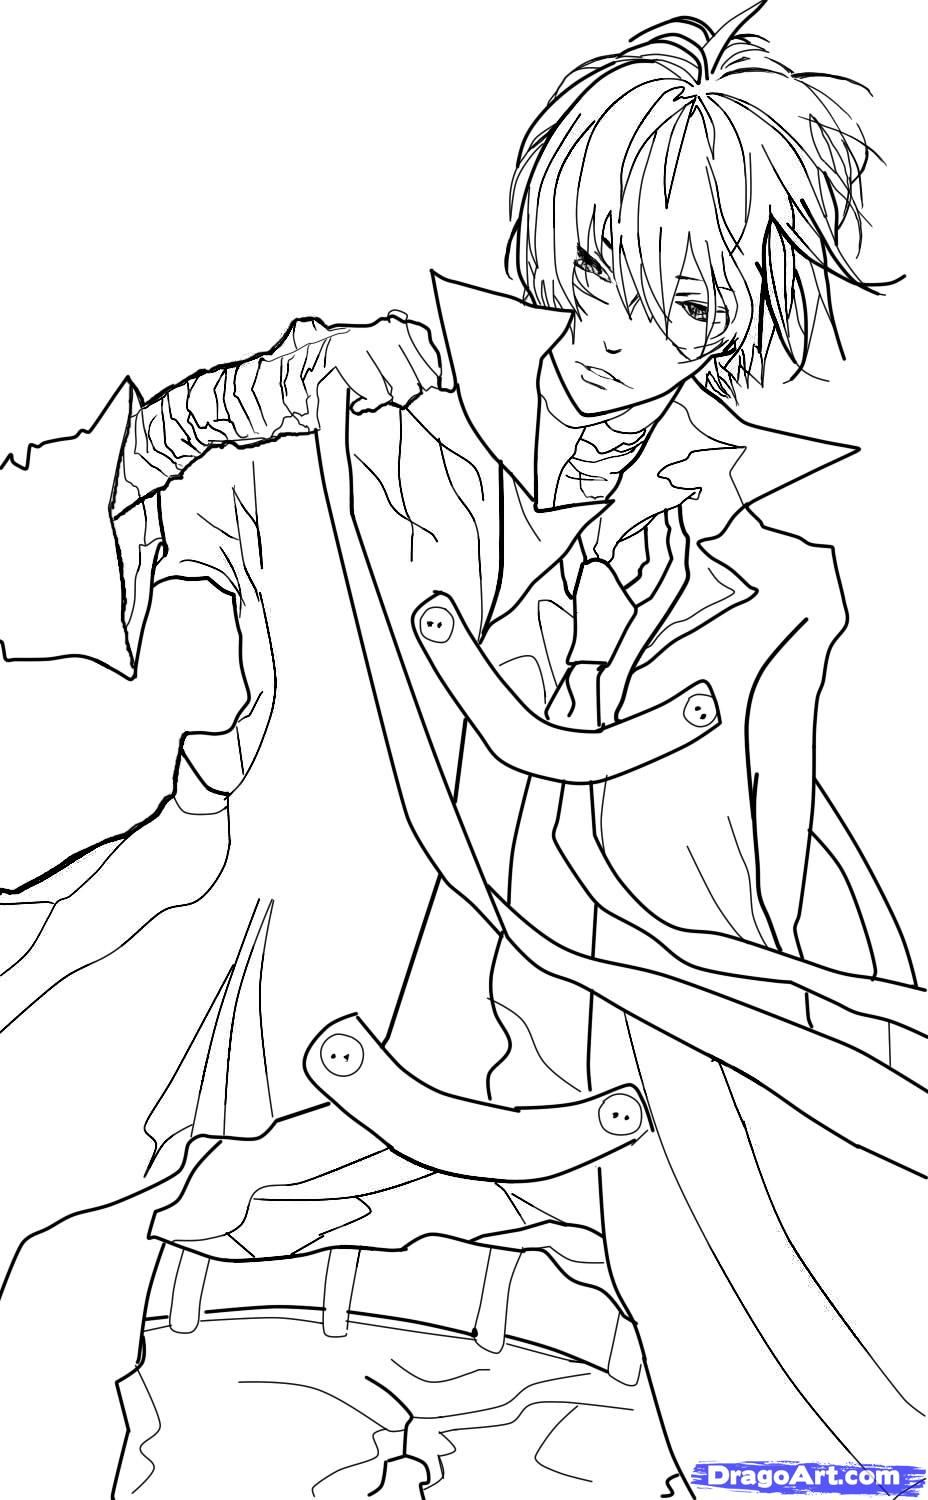 How To Sketch An Anime Boy Step By Step Anime People Anime Draw Japanese Anime Chibi Coloring Pages Coloring Pages For Boys Disney Princess Coloring Pages